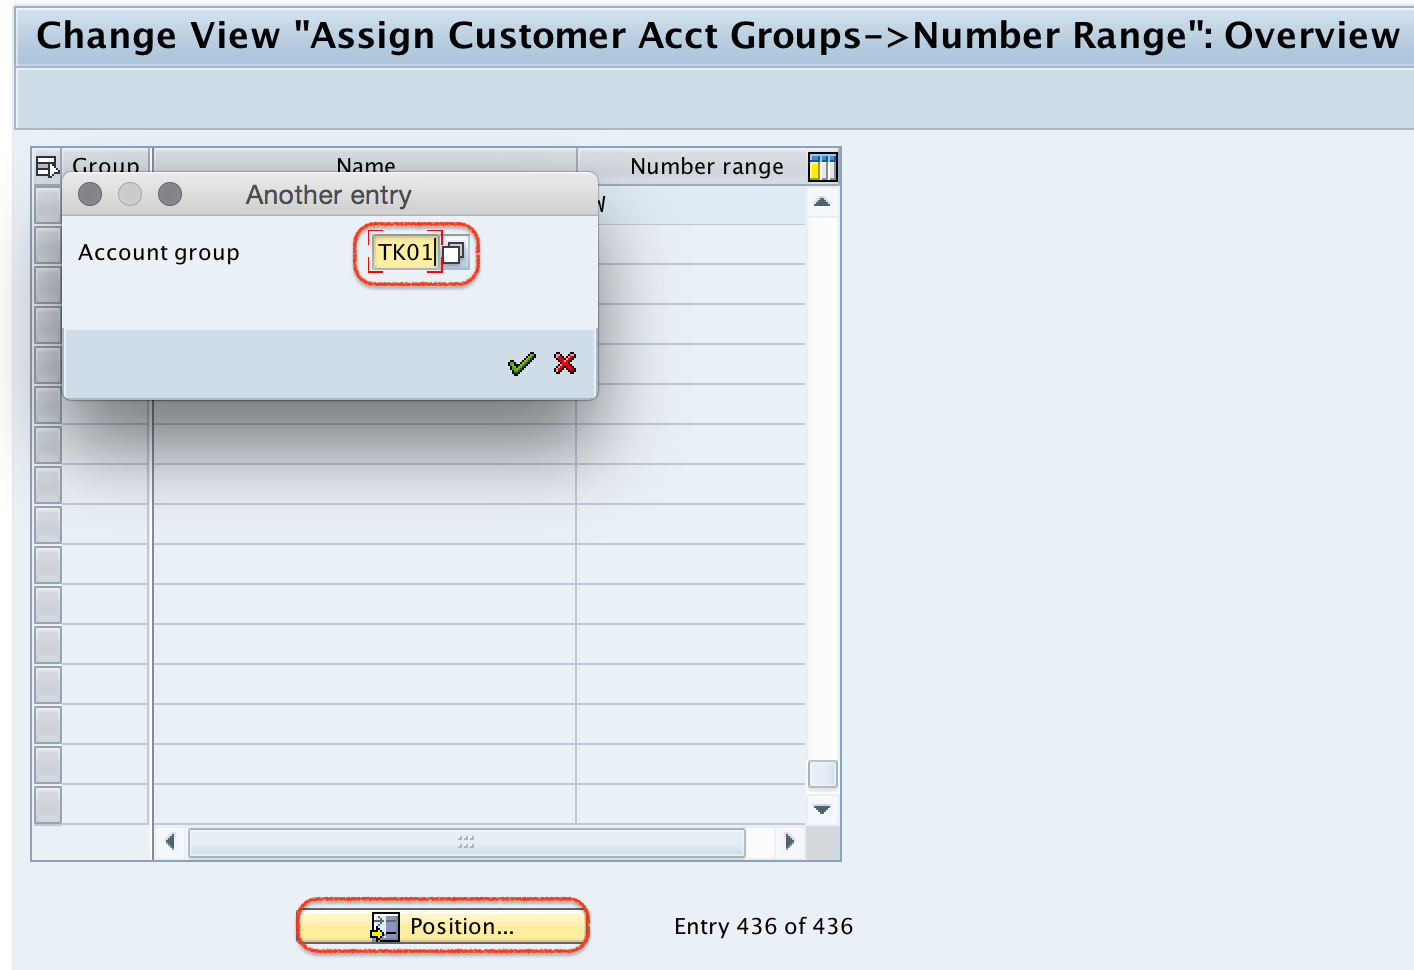 Assign Customer Acct Groups --> Number Range overview